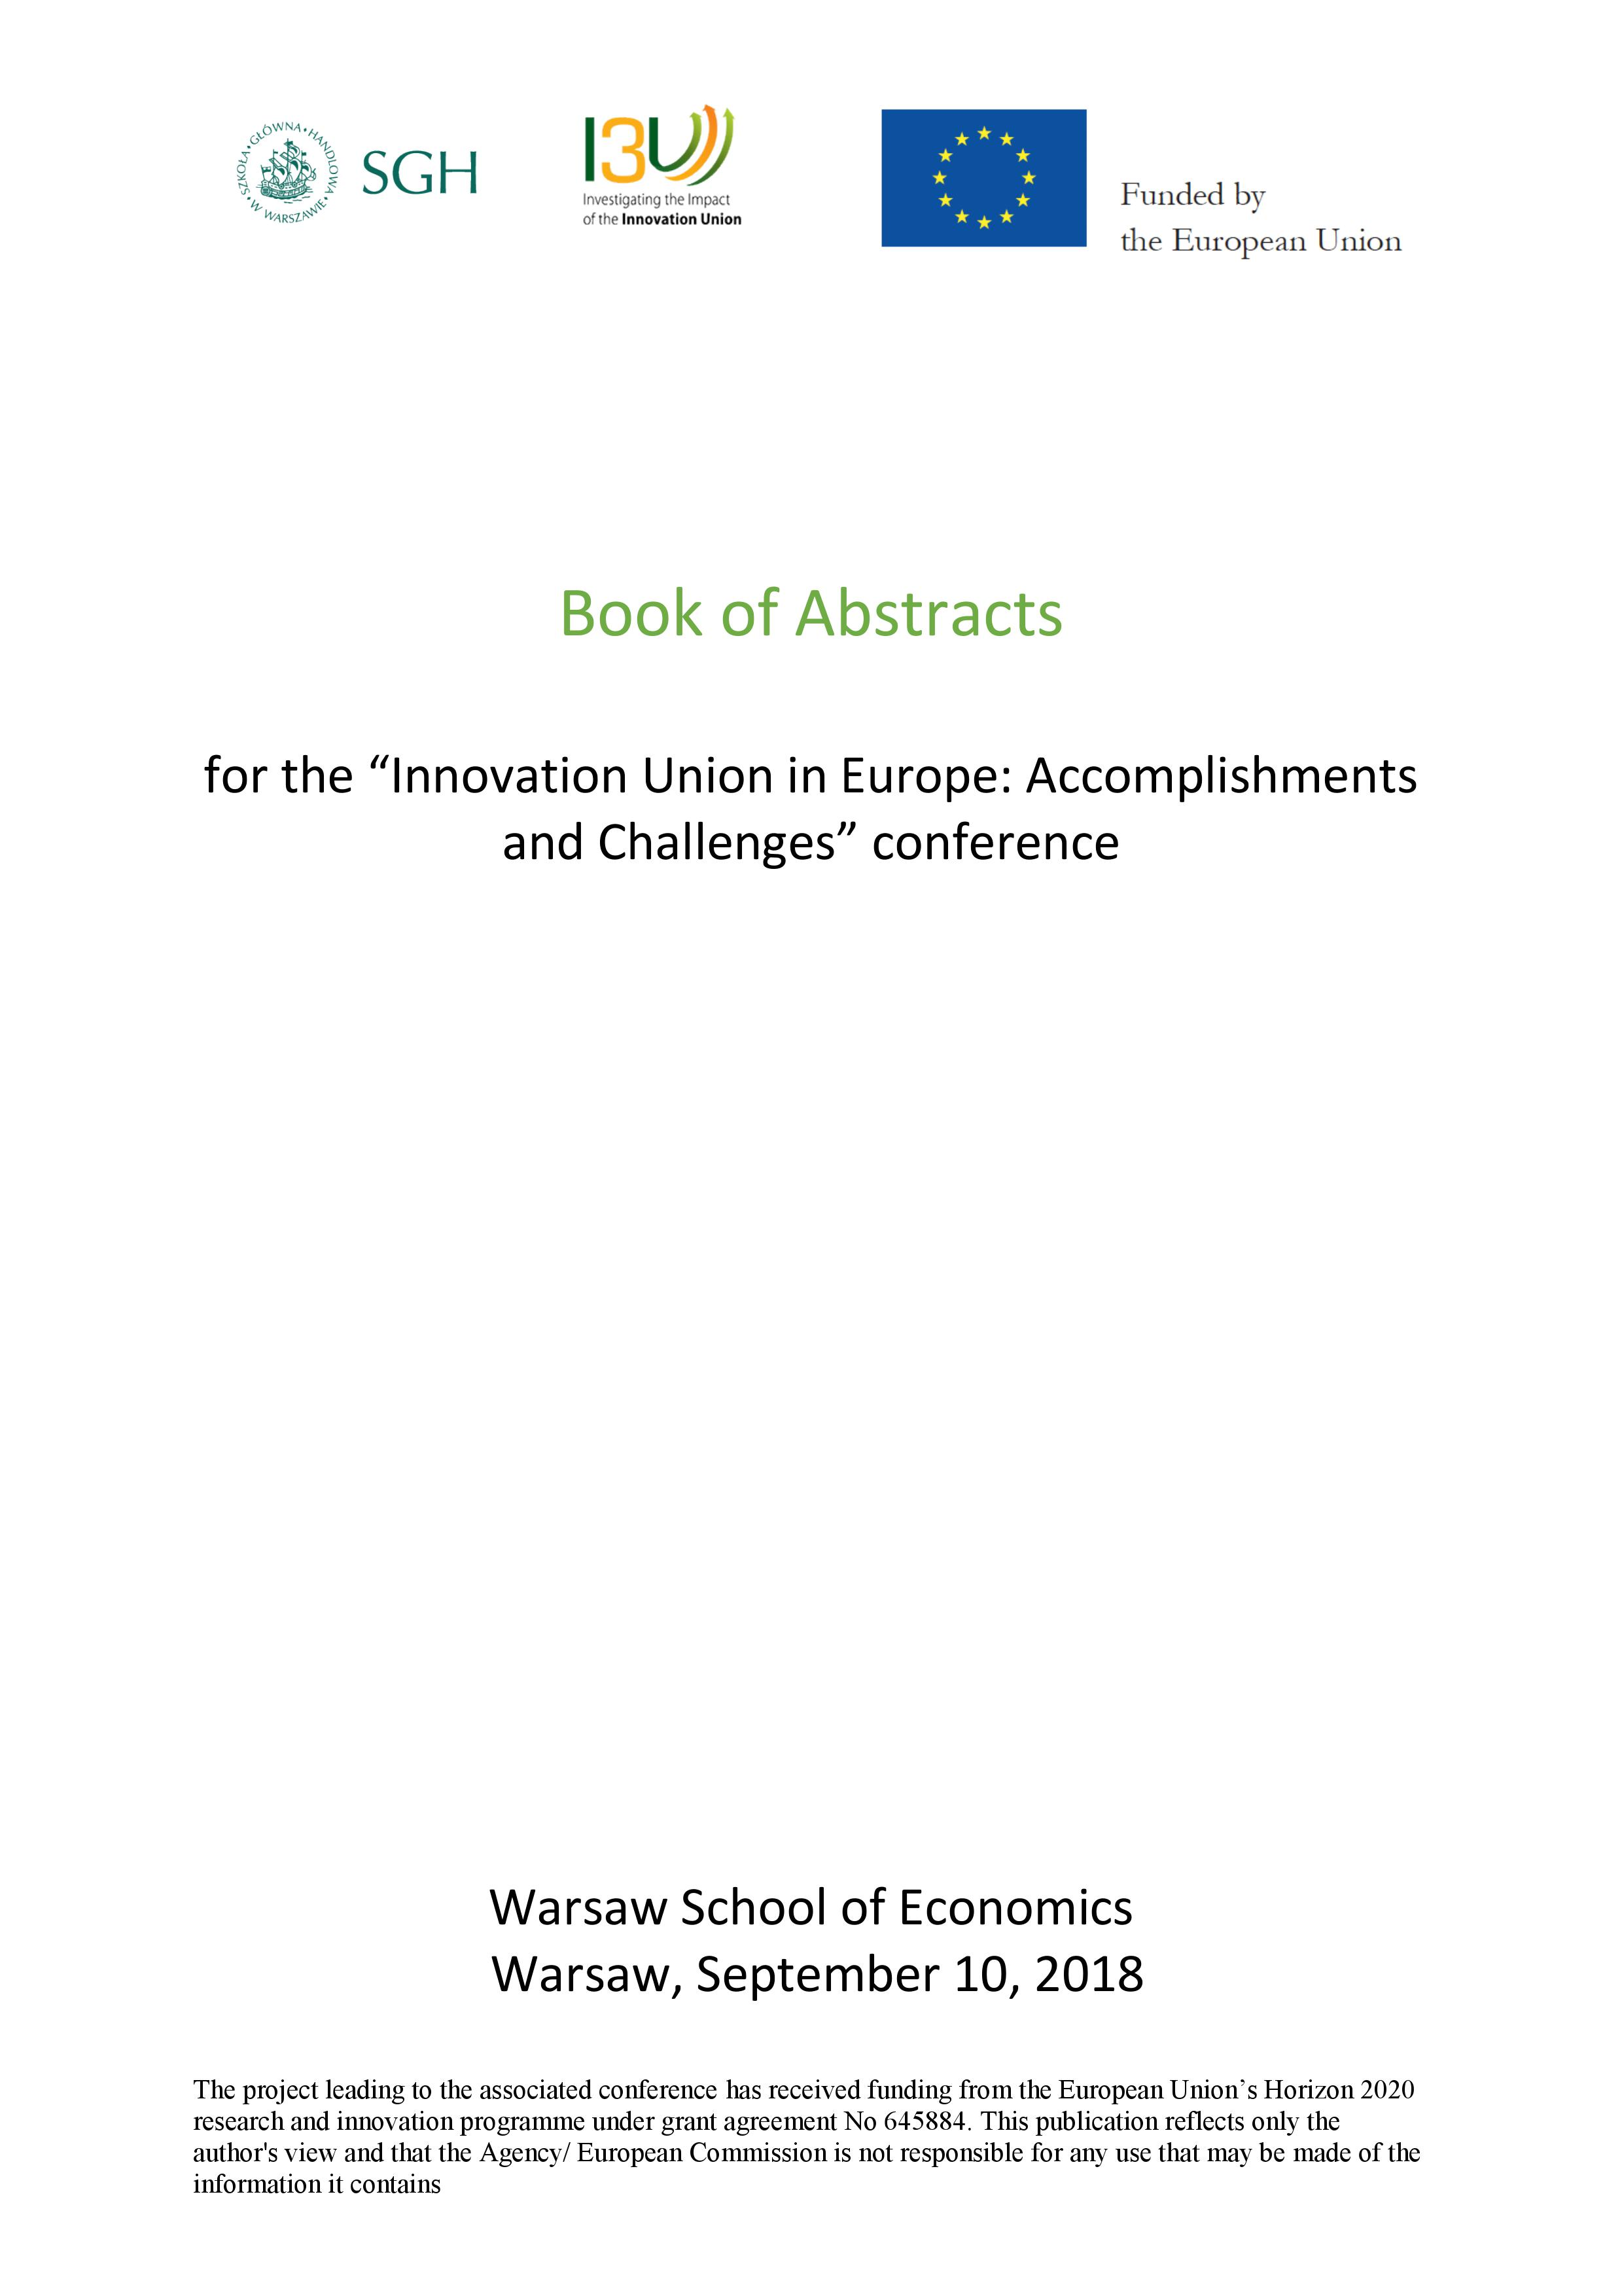 book of abstracts1.jpg